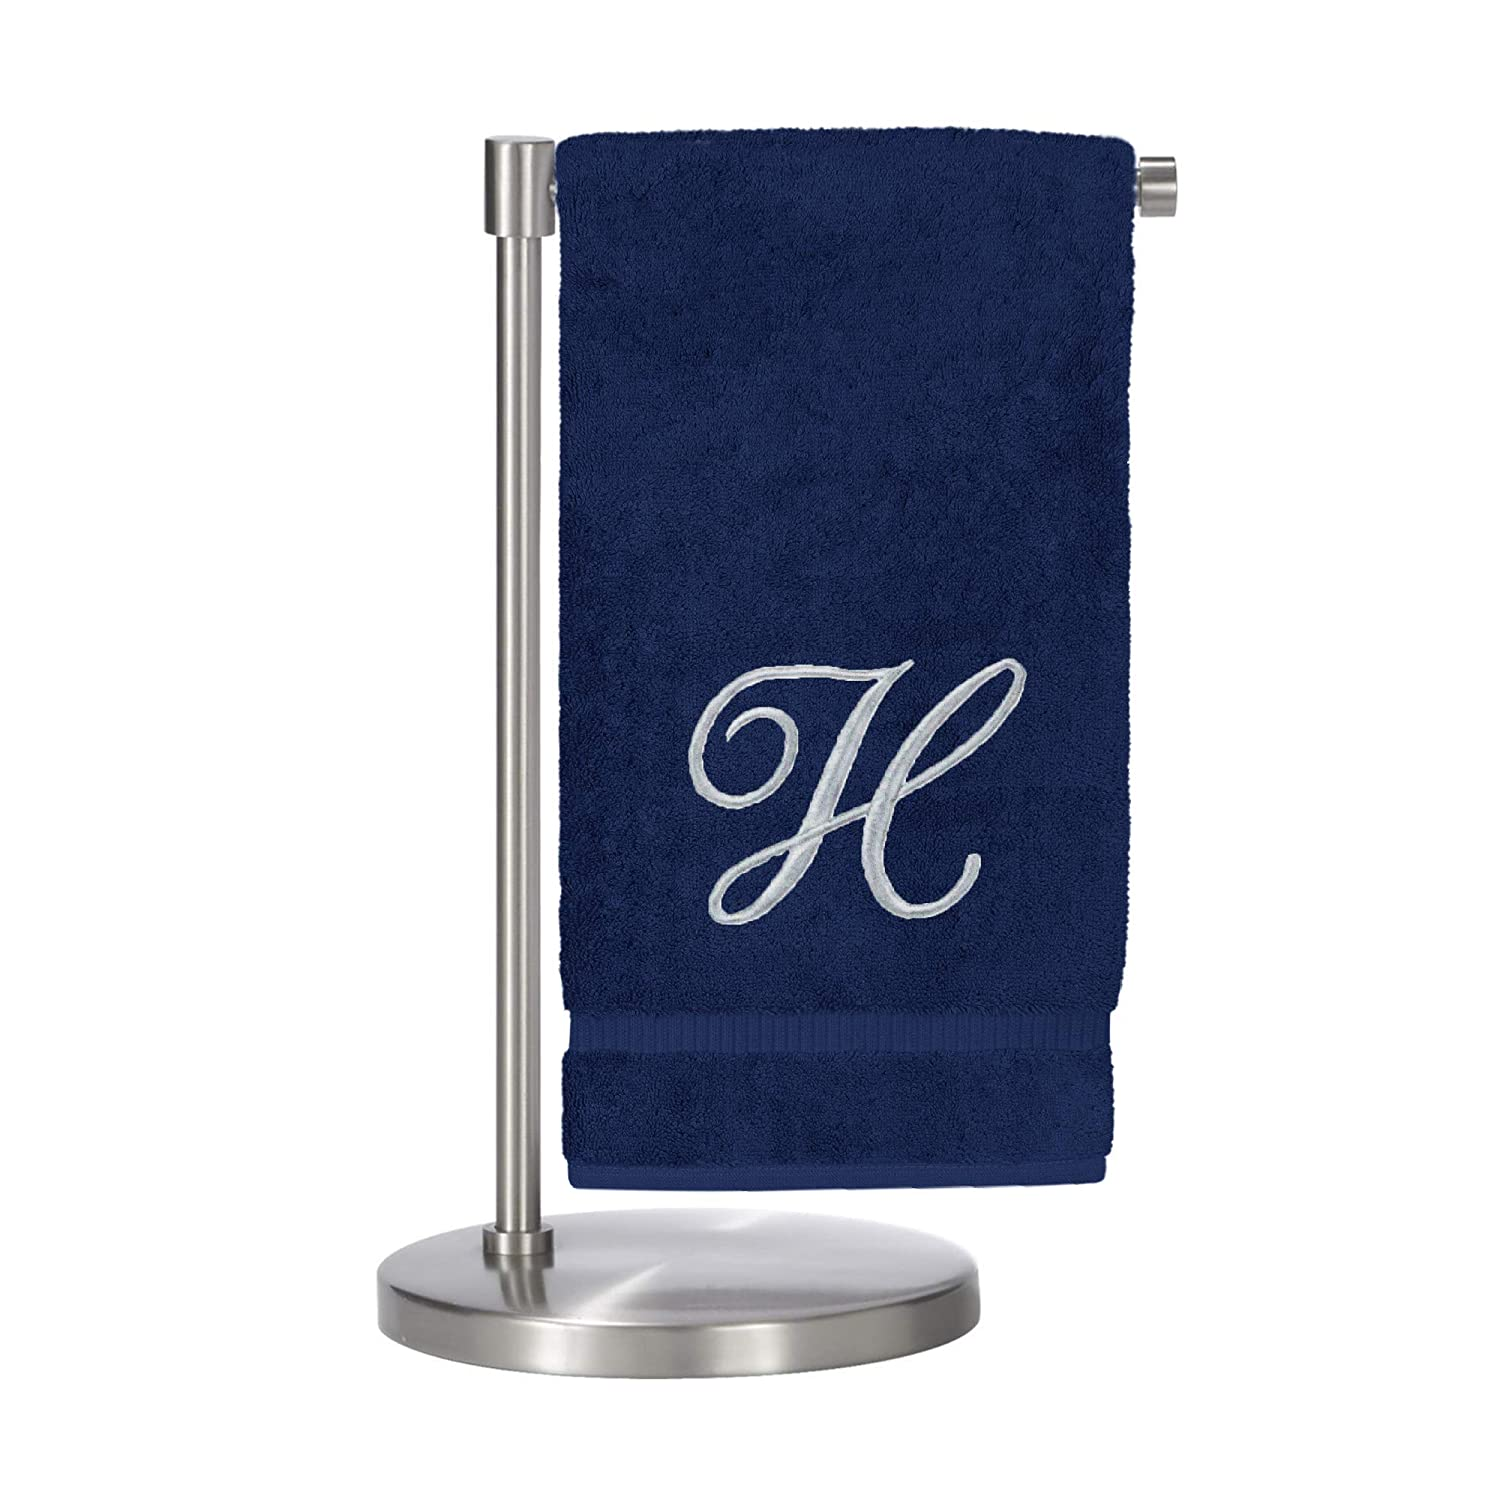 BC BARE COTTON - Luxury Monogrammed Bath Towel